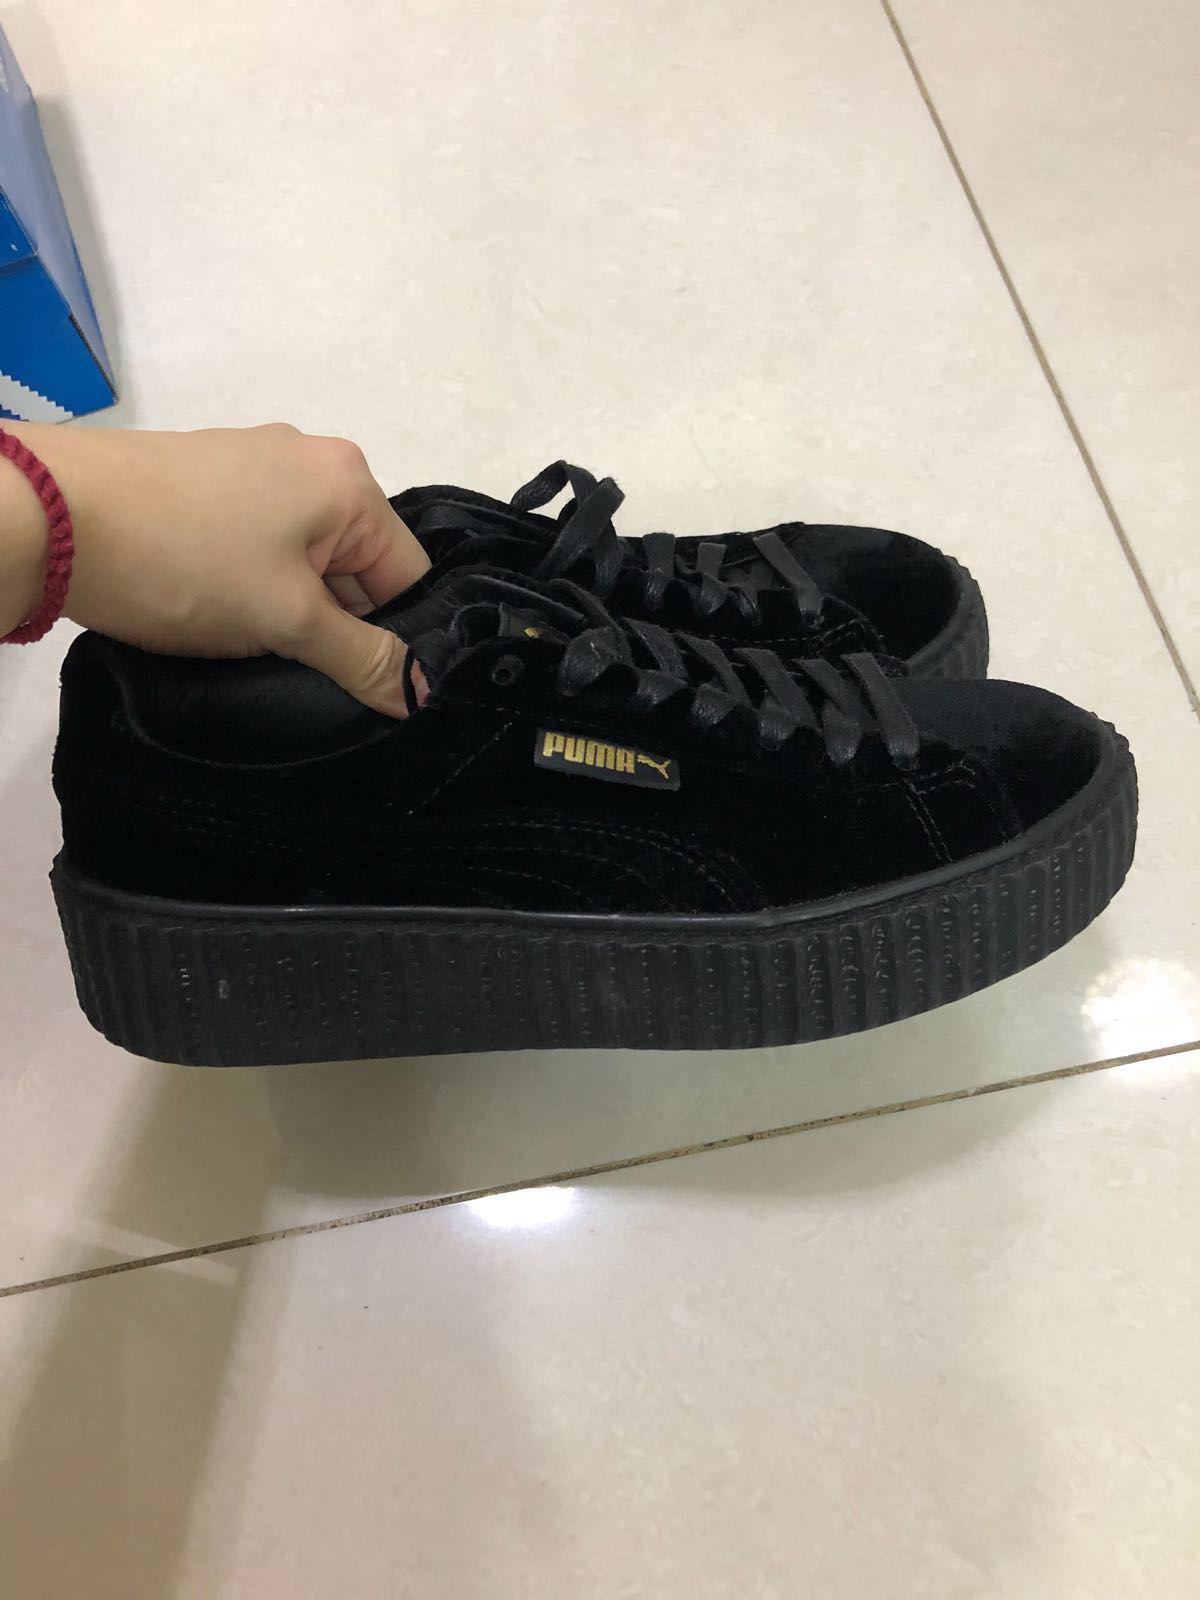 wholesale dealer 954df 7bef6 Fenty x Puma Creepers Velvet, Women's Fashion, Shoes ...